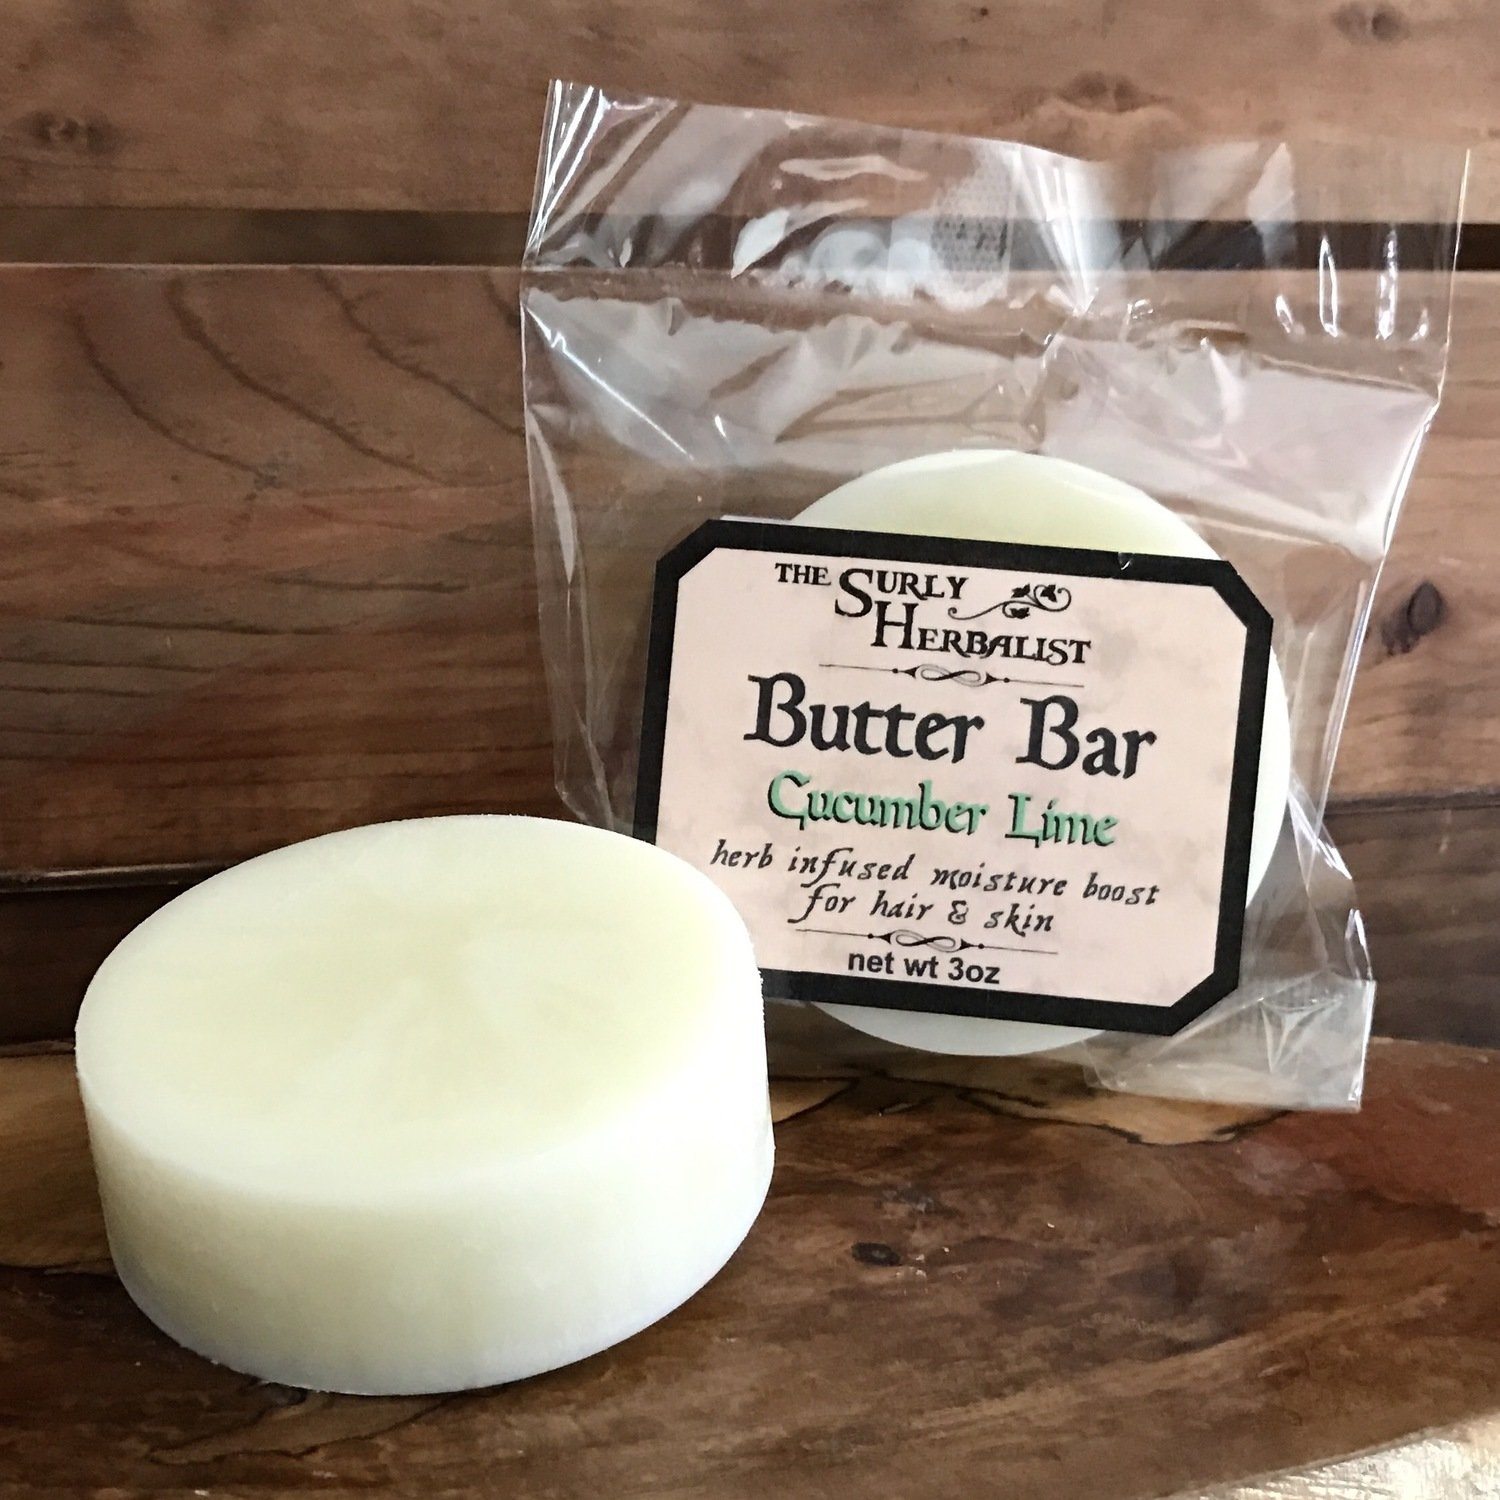 Butter Bar - Cucumber Lime